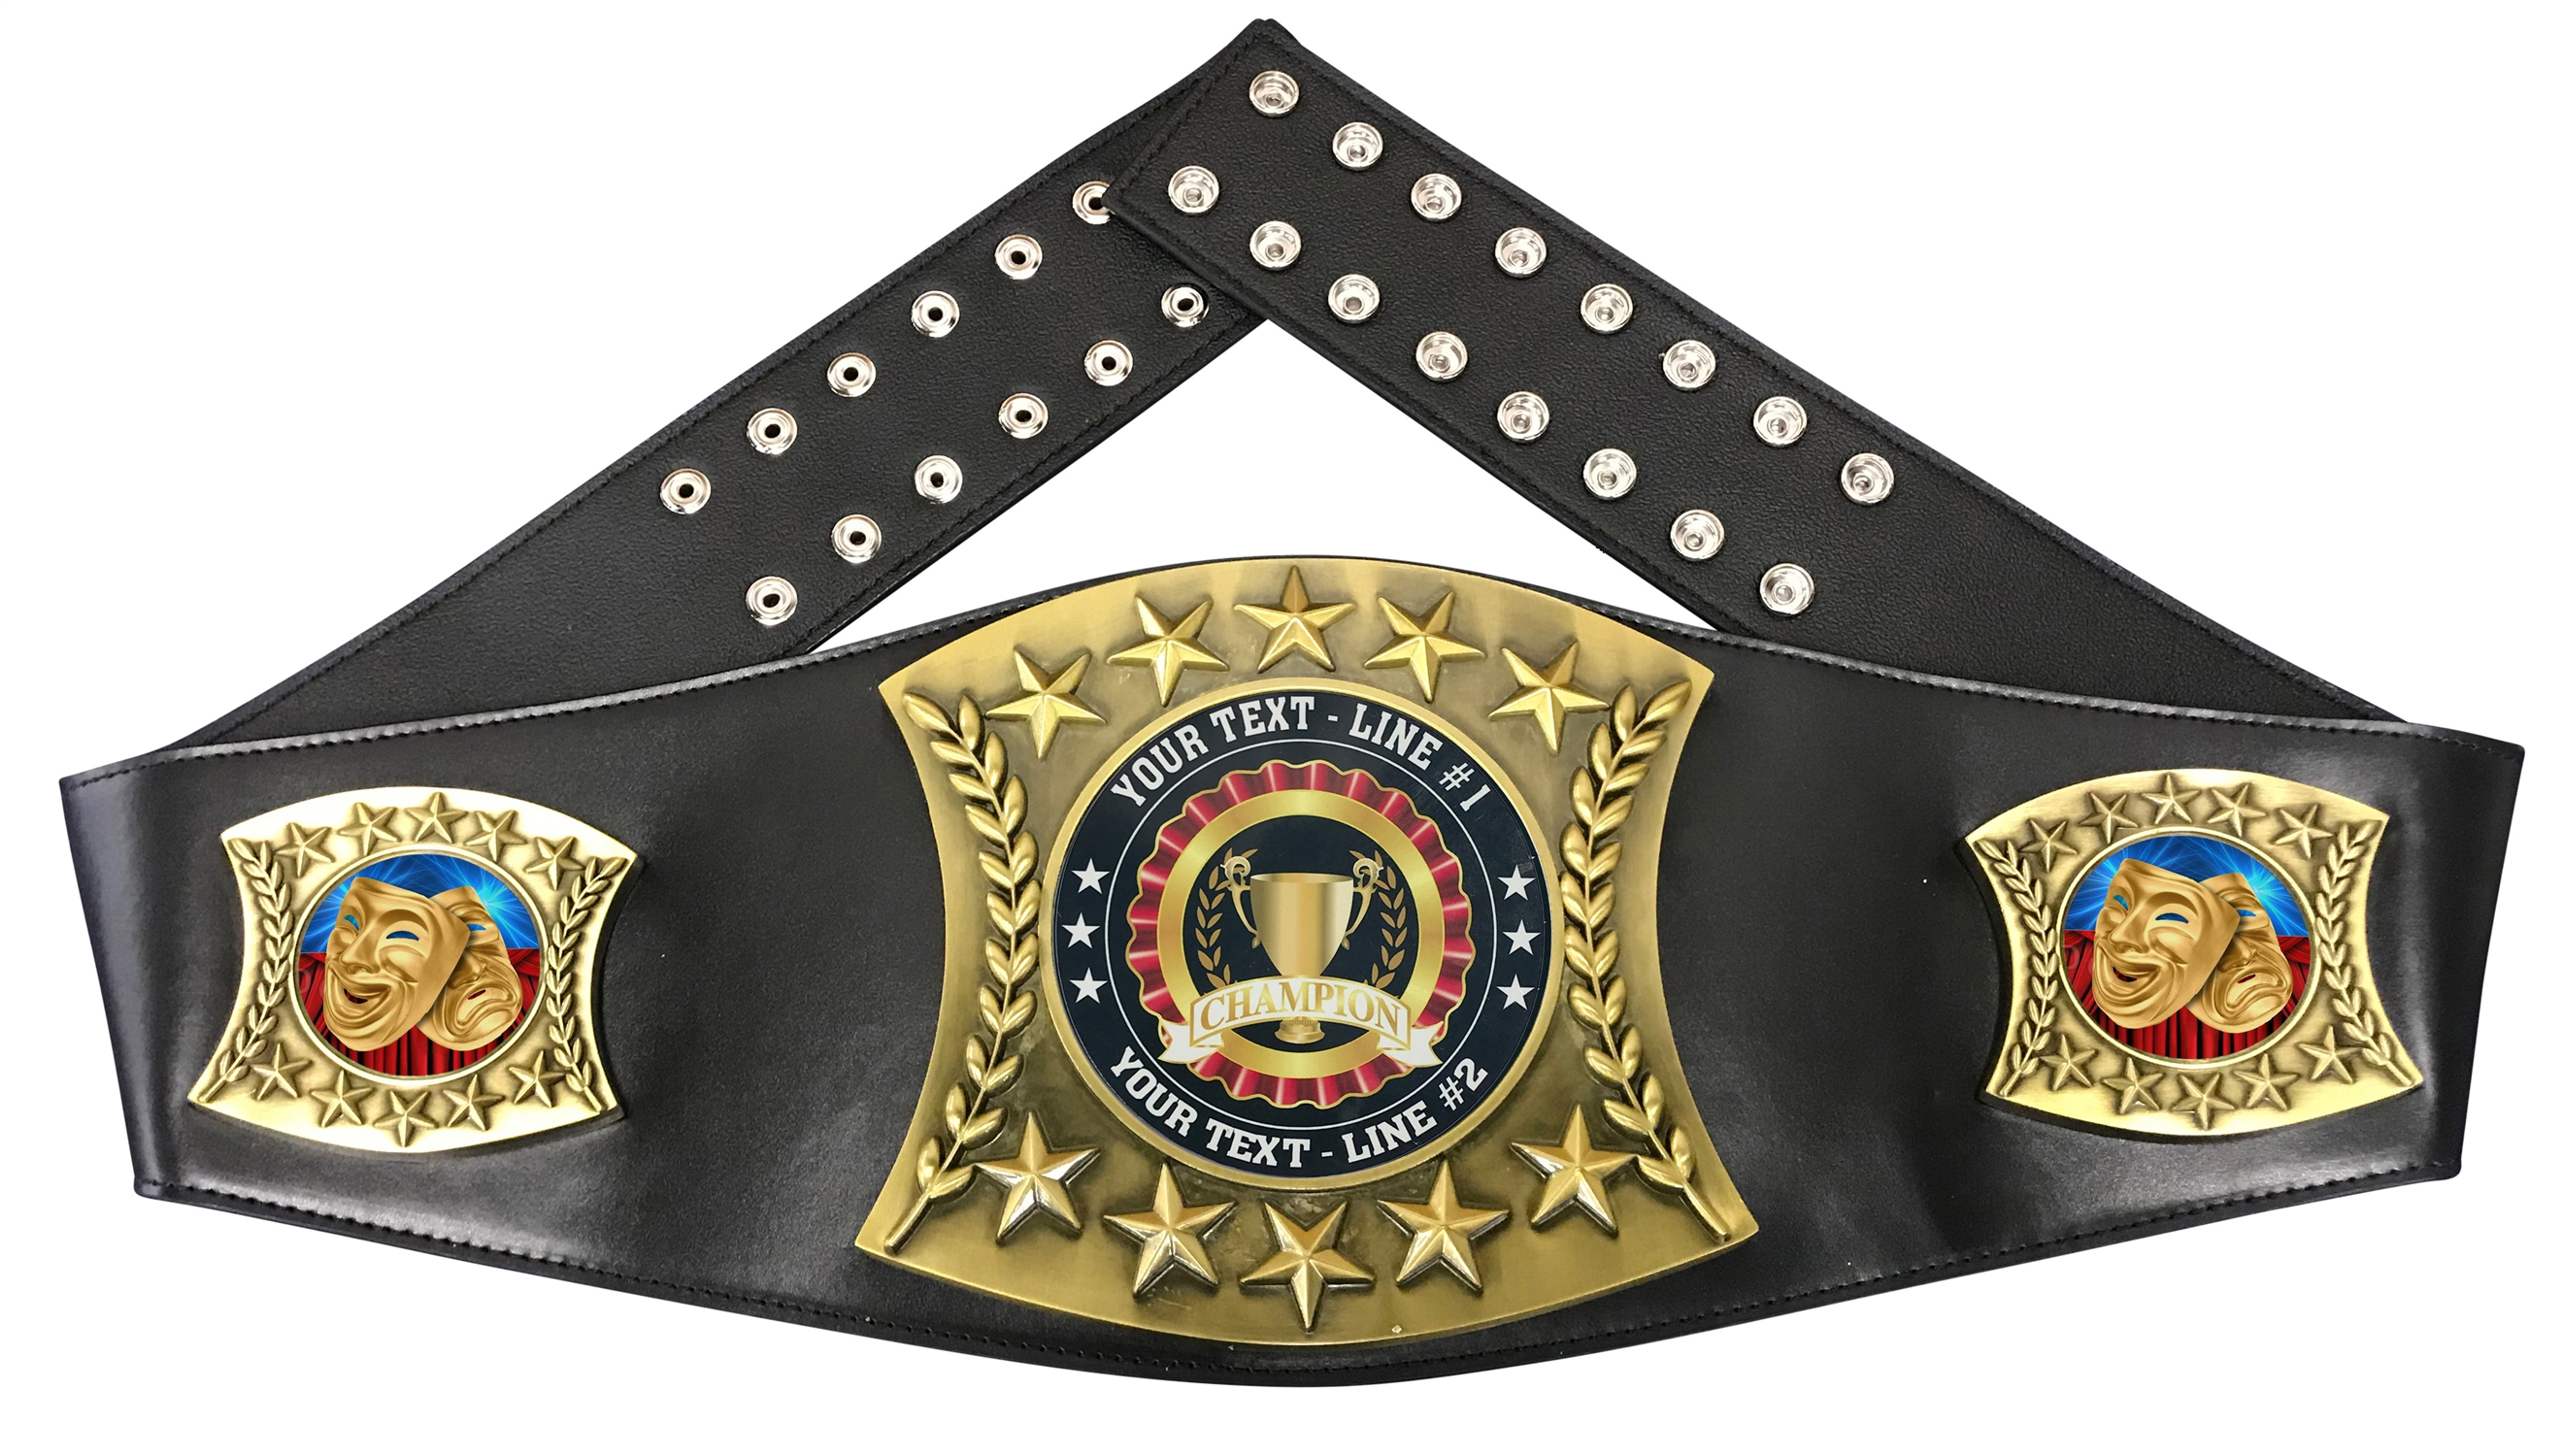 Drama Personalized Championship Leather Belt